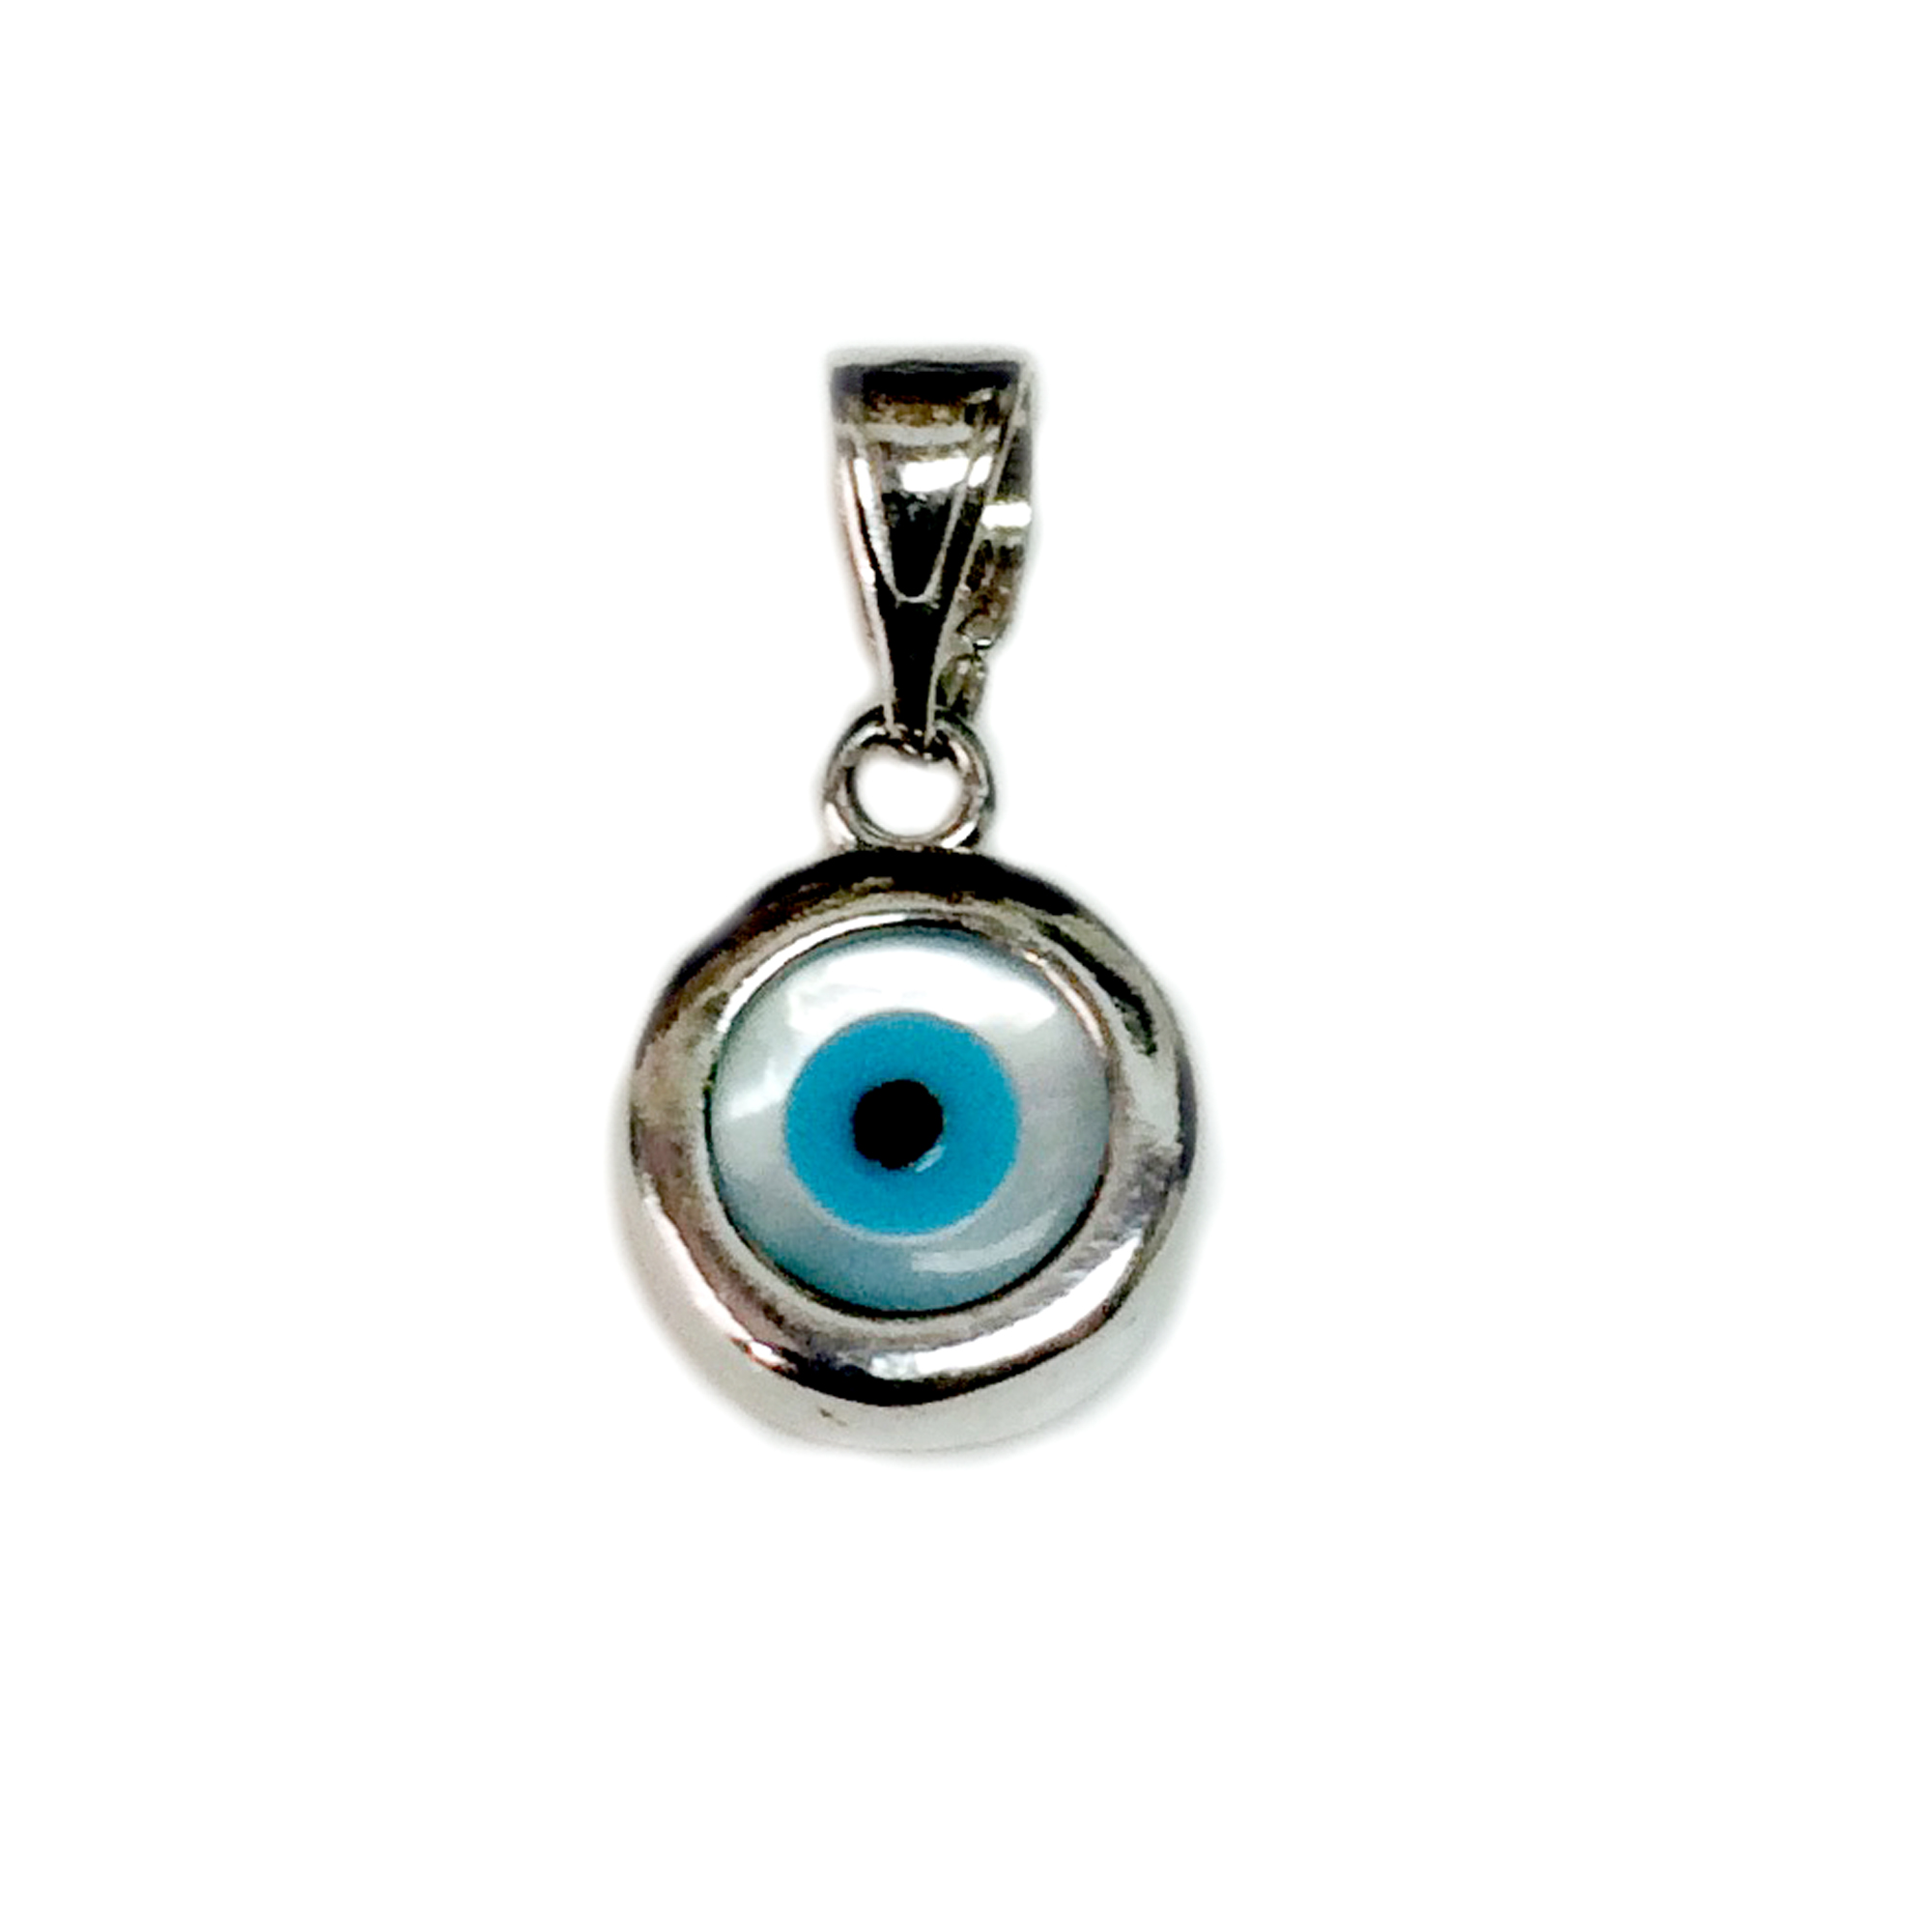 Sterling Silver Evil Eye Pendant Charm, 10mm Inspired from the of Greek ancient jewelry era, this sterling silver charm features the Evil Eye motif, also known as  Mati  in Greek, bordering a beautiful  glass Evil Eye. Measuring at 10mm diameter, this Greek evil eye is rhodium plated for better tarnish resistance.